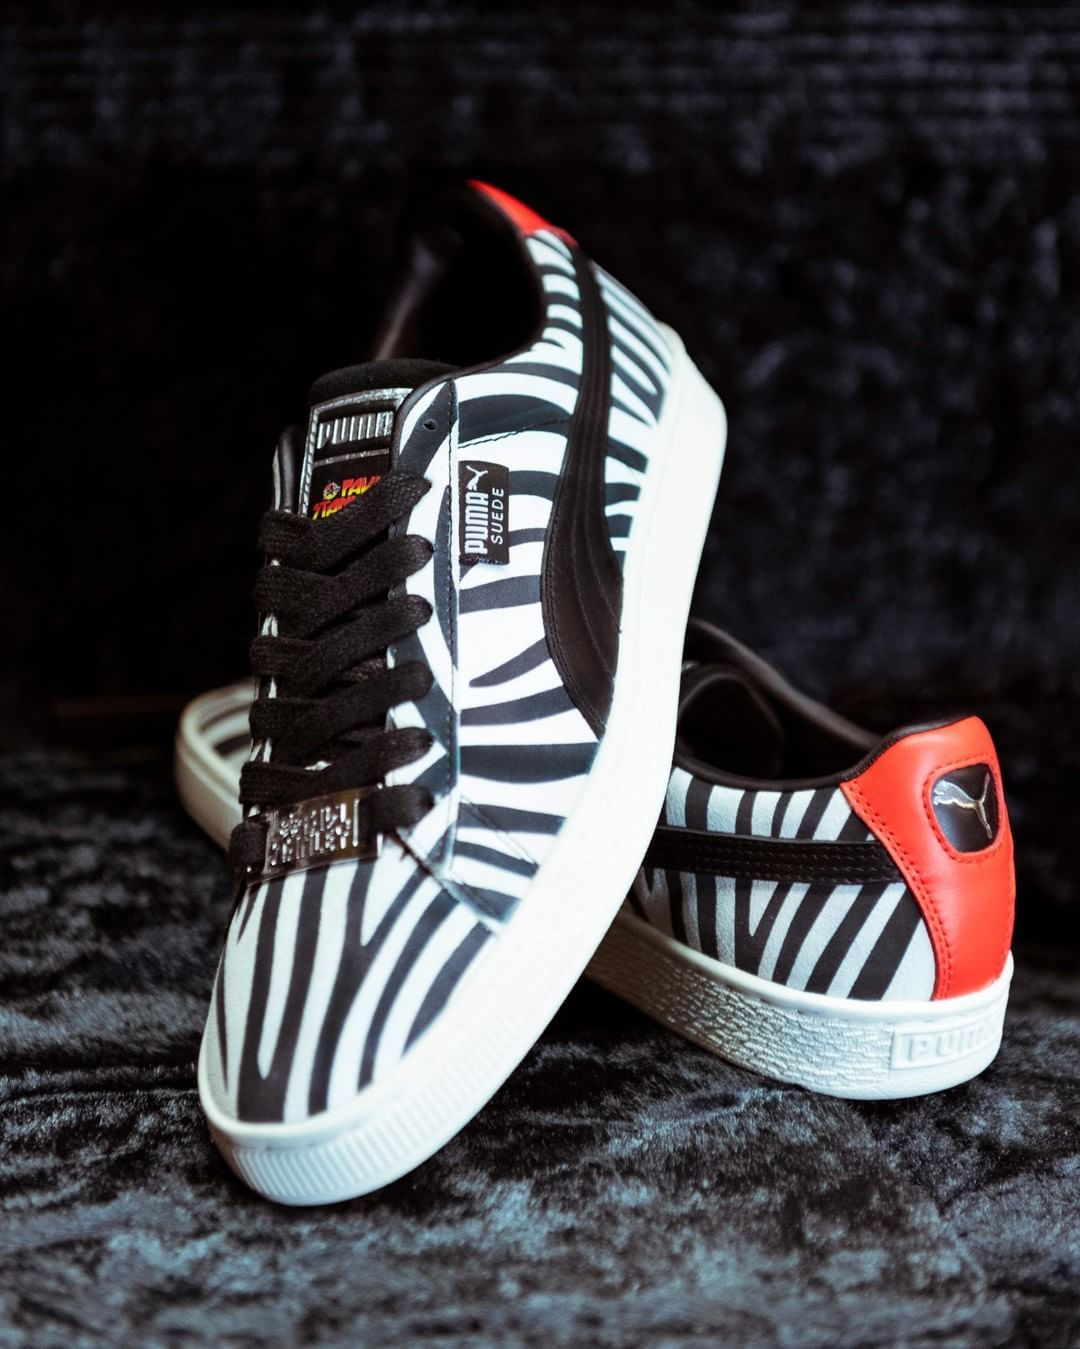 7cc327e1b5378d We re amped up.  PUMA x PAUL STANLEY. Available now online!